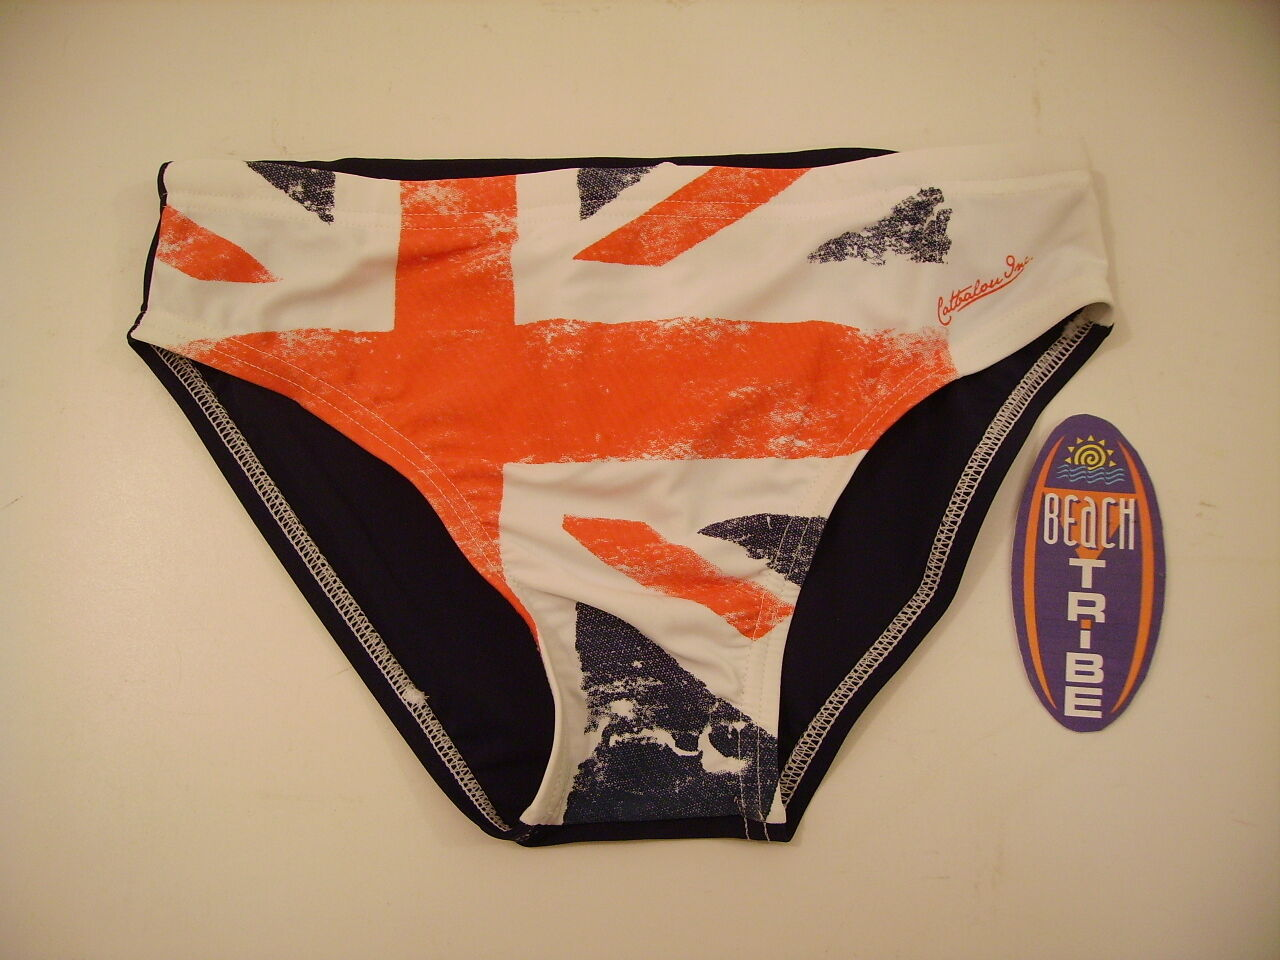 COSTUME SLIP CATBALOU SWIMSUIT BEACH POOLS NORED ENGLAND BIAN blue ROS XL